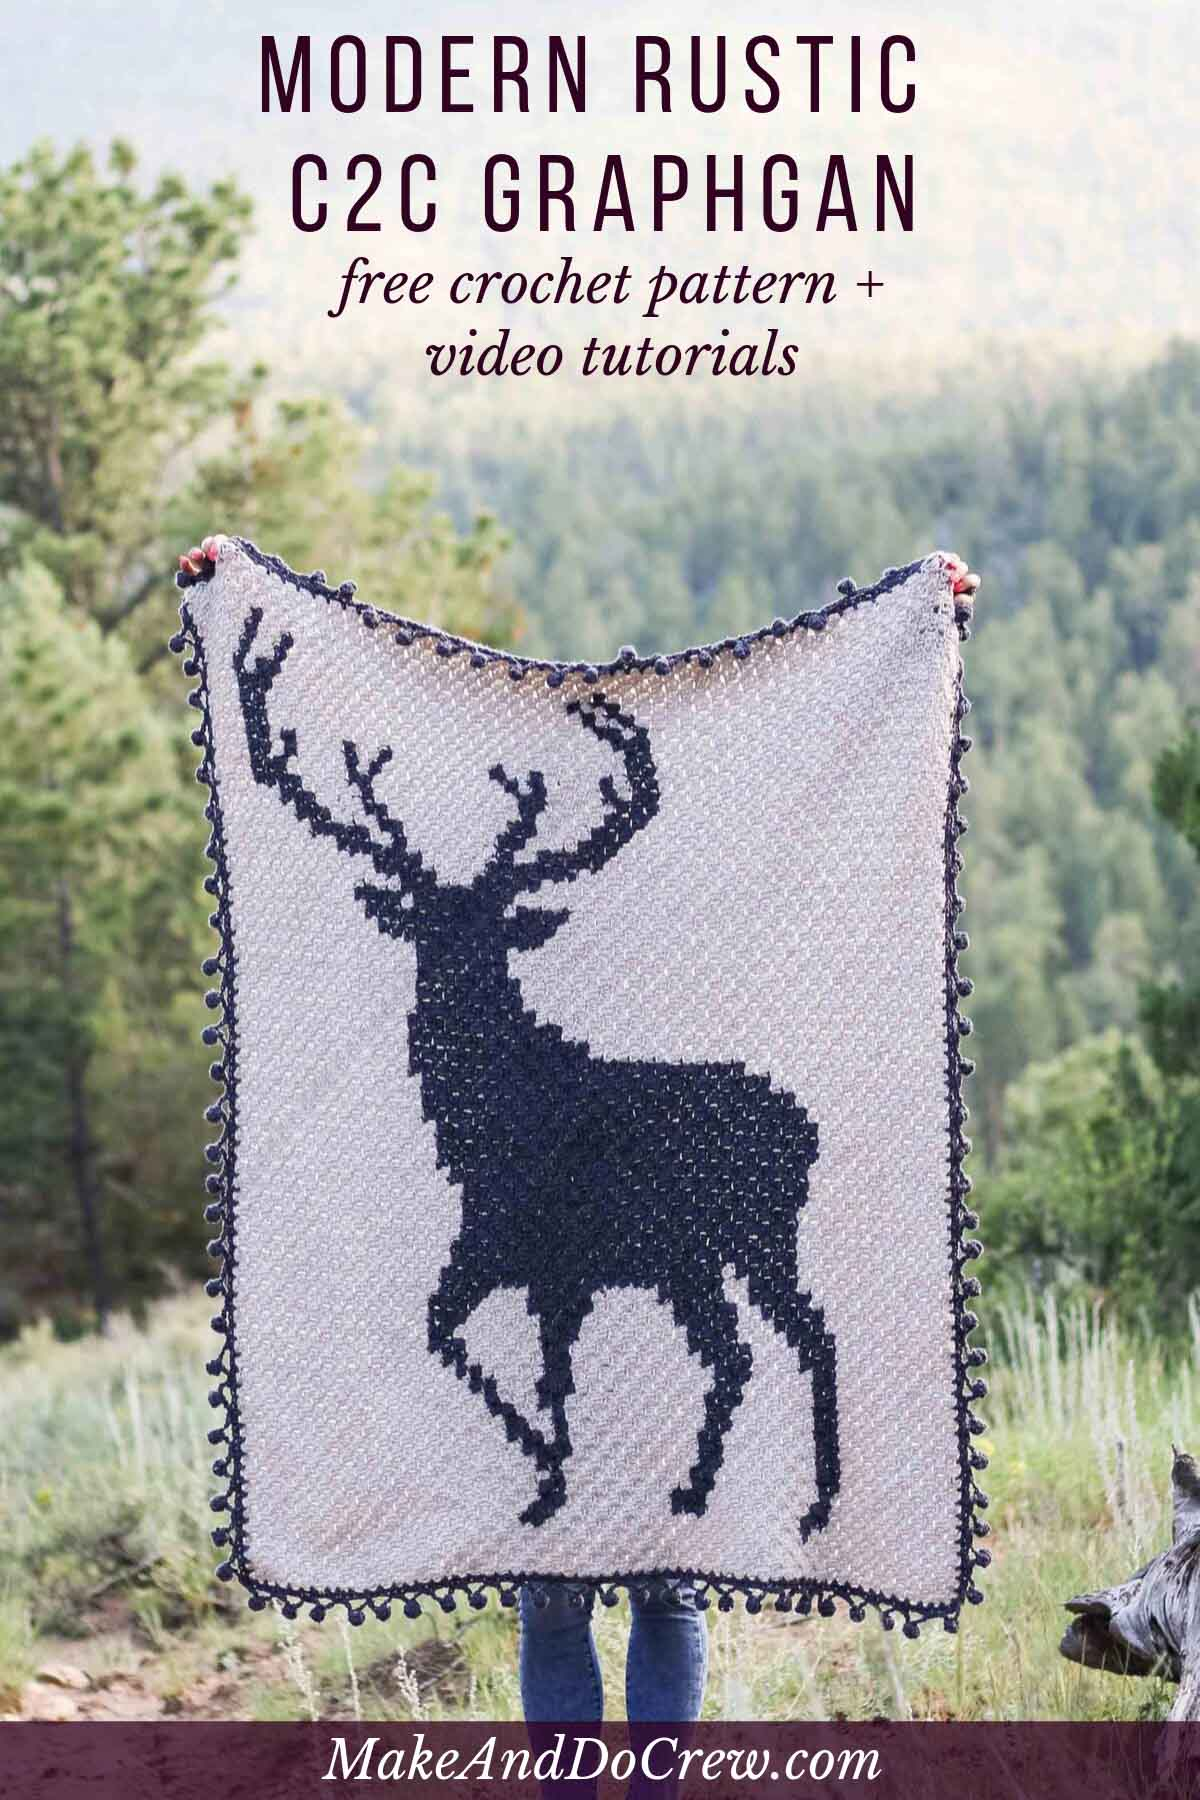 This c2c crochet deer graphgan is perfect for Christmas, a forest-themed baby nursery or as a gift for your favorite hunter. Free blanket pattern and video tutorials.